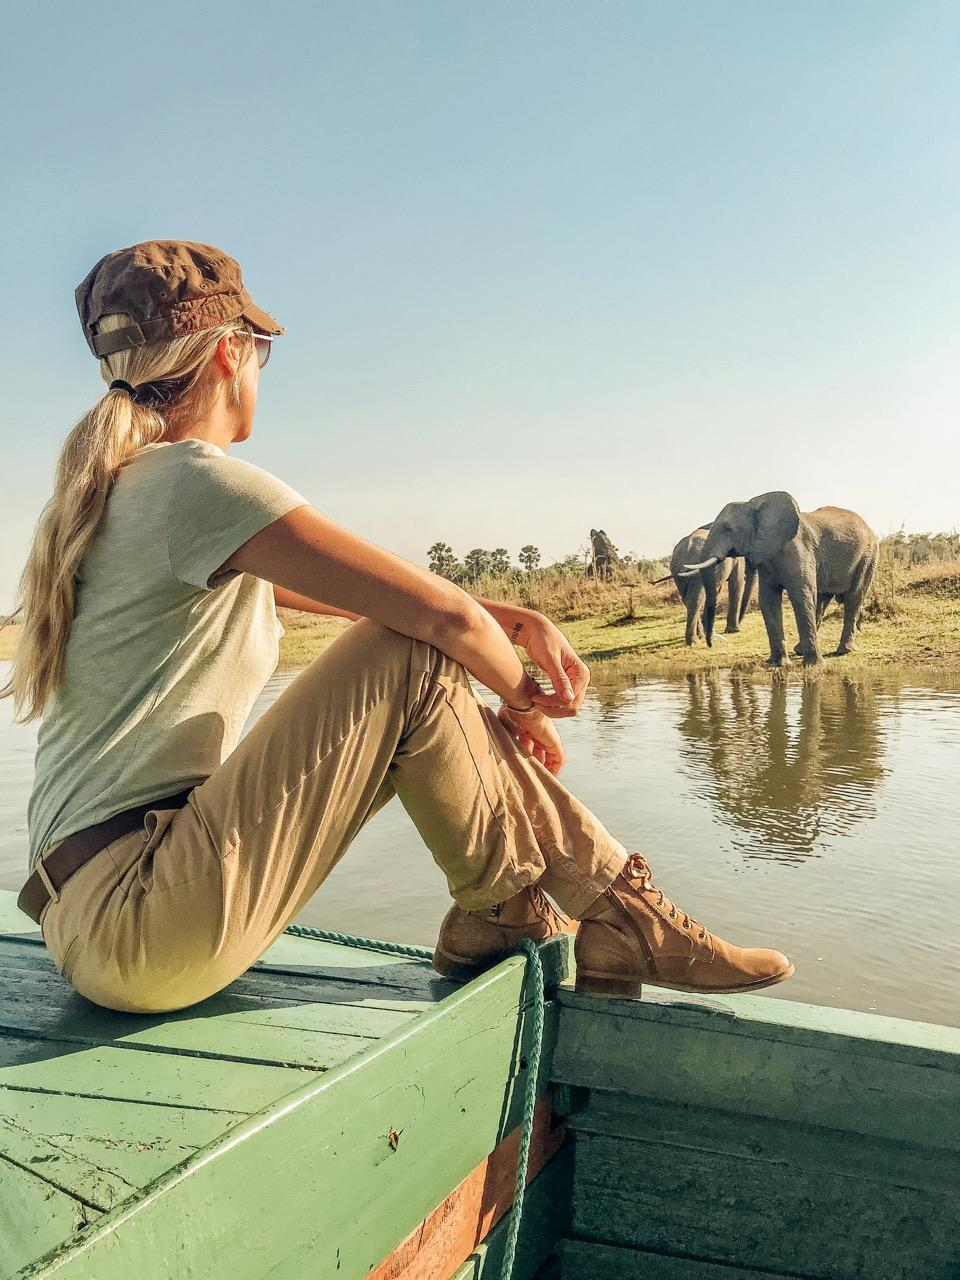 Malawi - Co-founder of We Are Travel Girls, Vaness Rivers in Malawi on a river safari